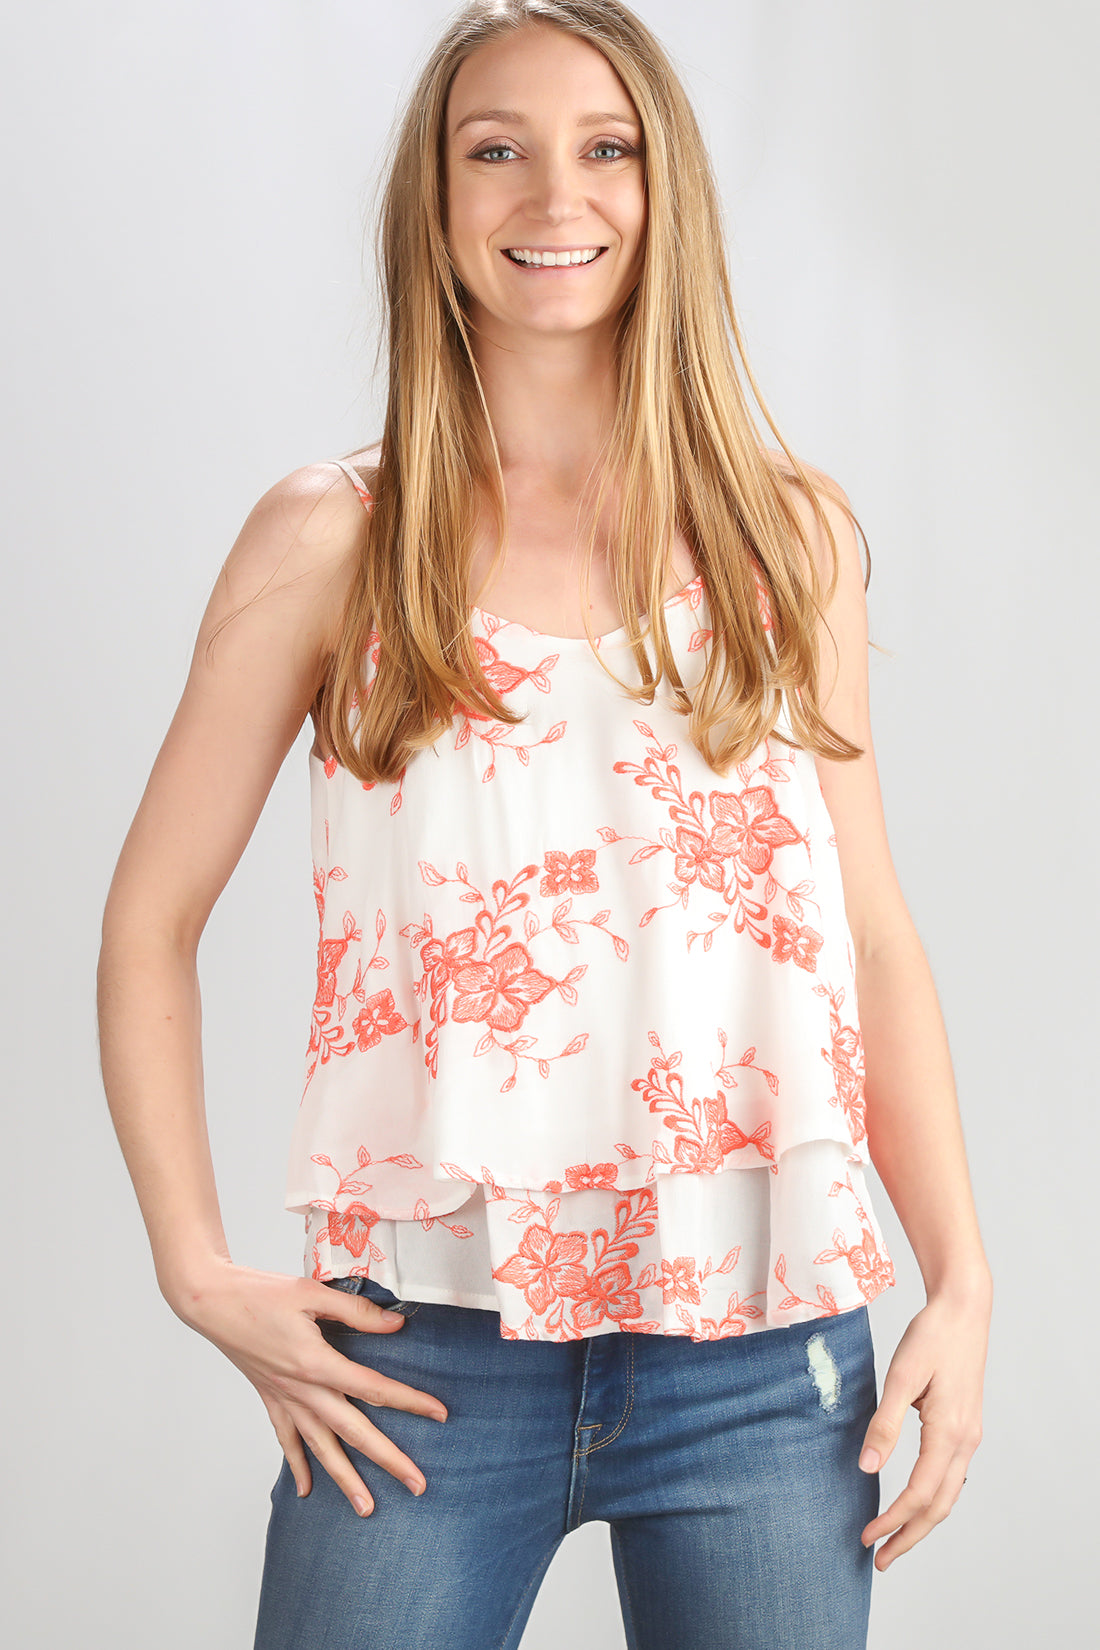 Ivory Floral Embroidered Tank